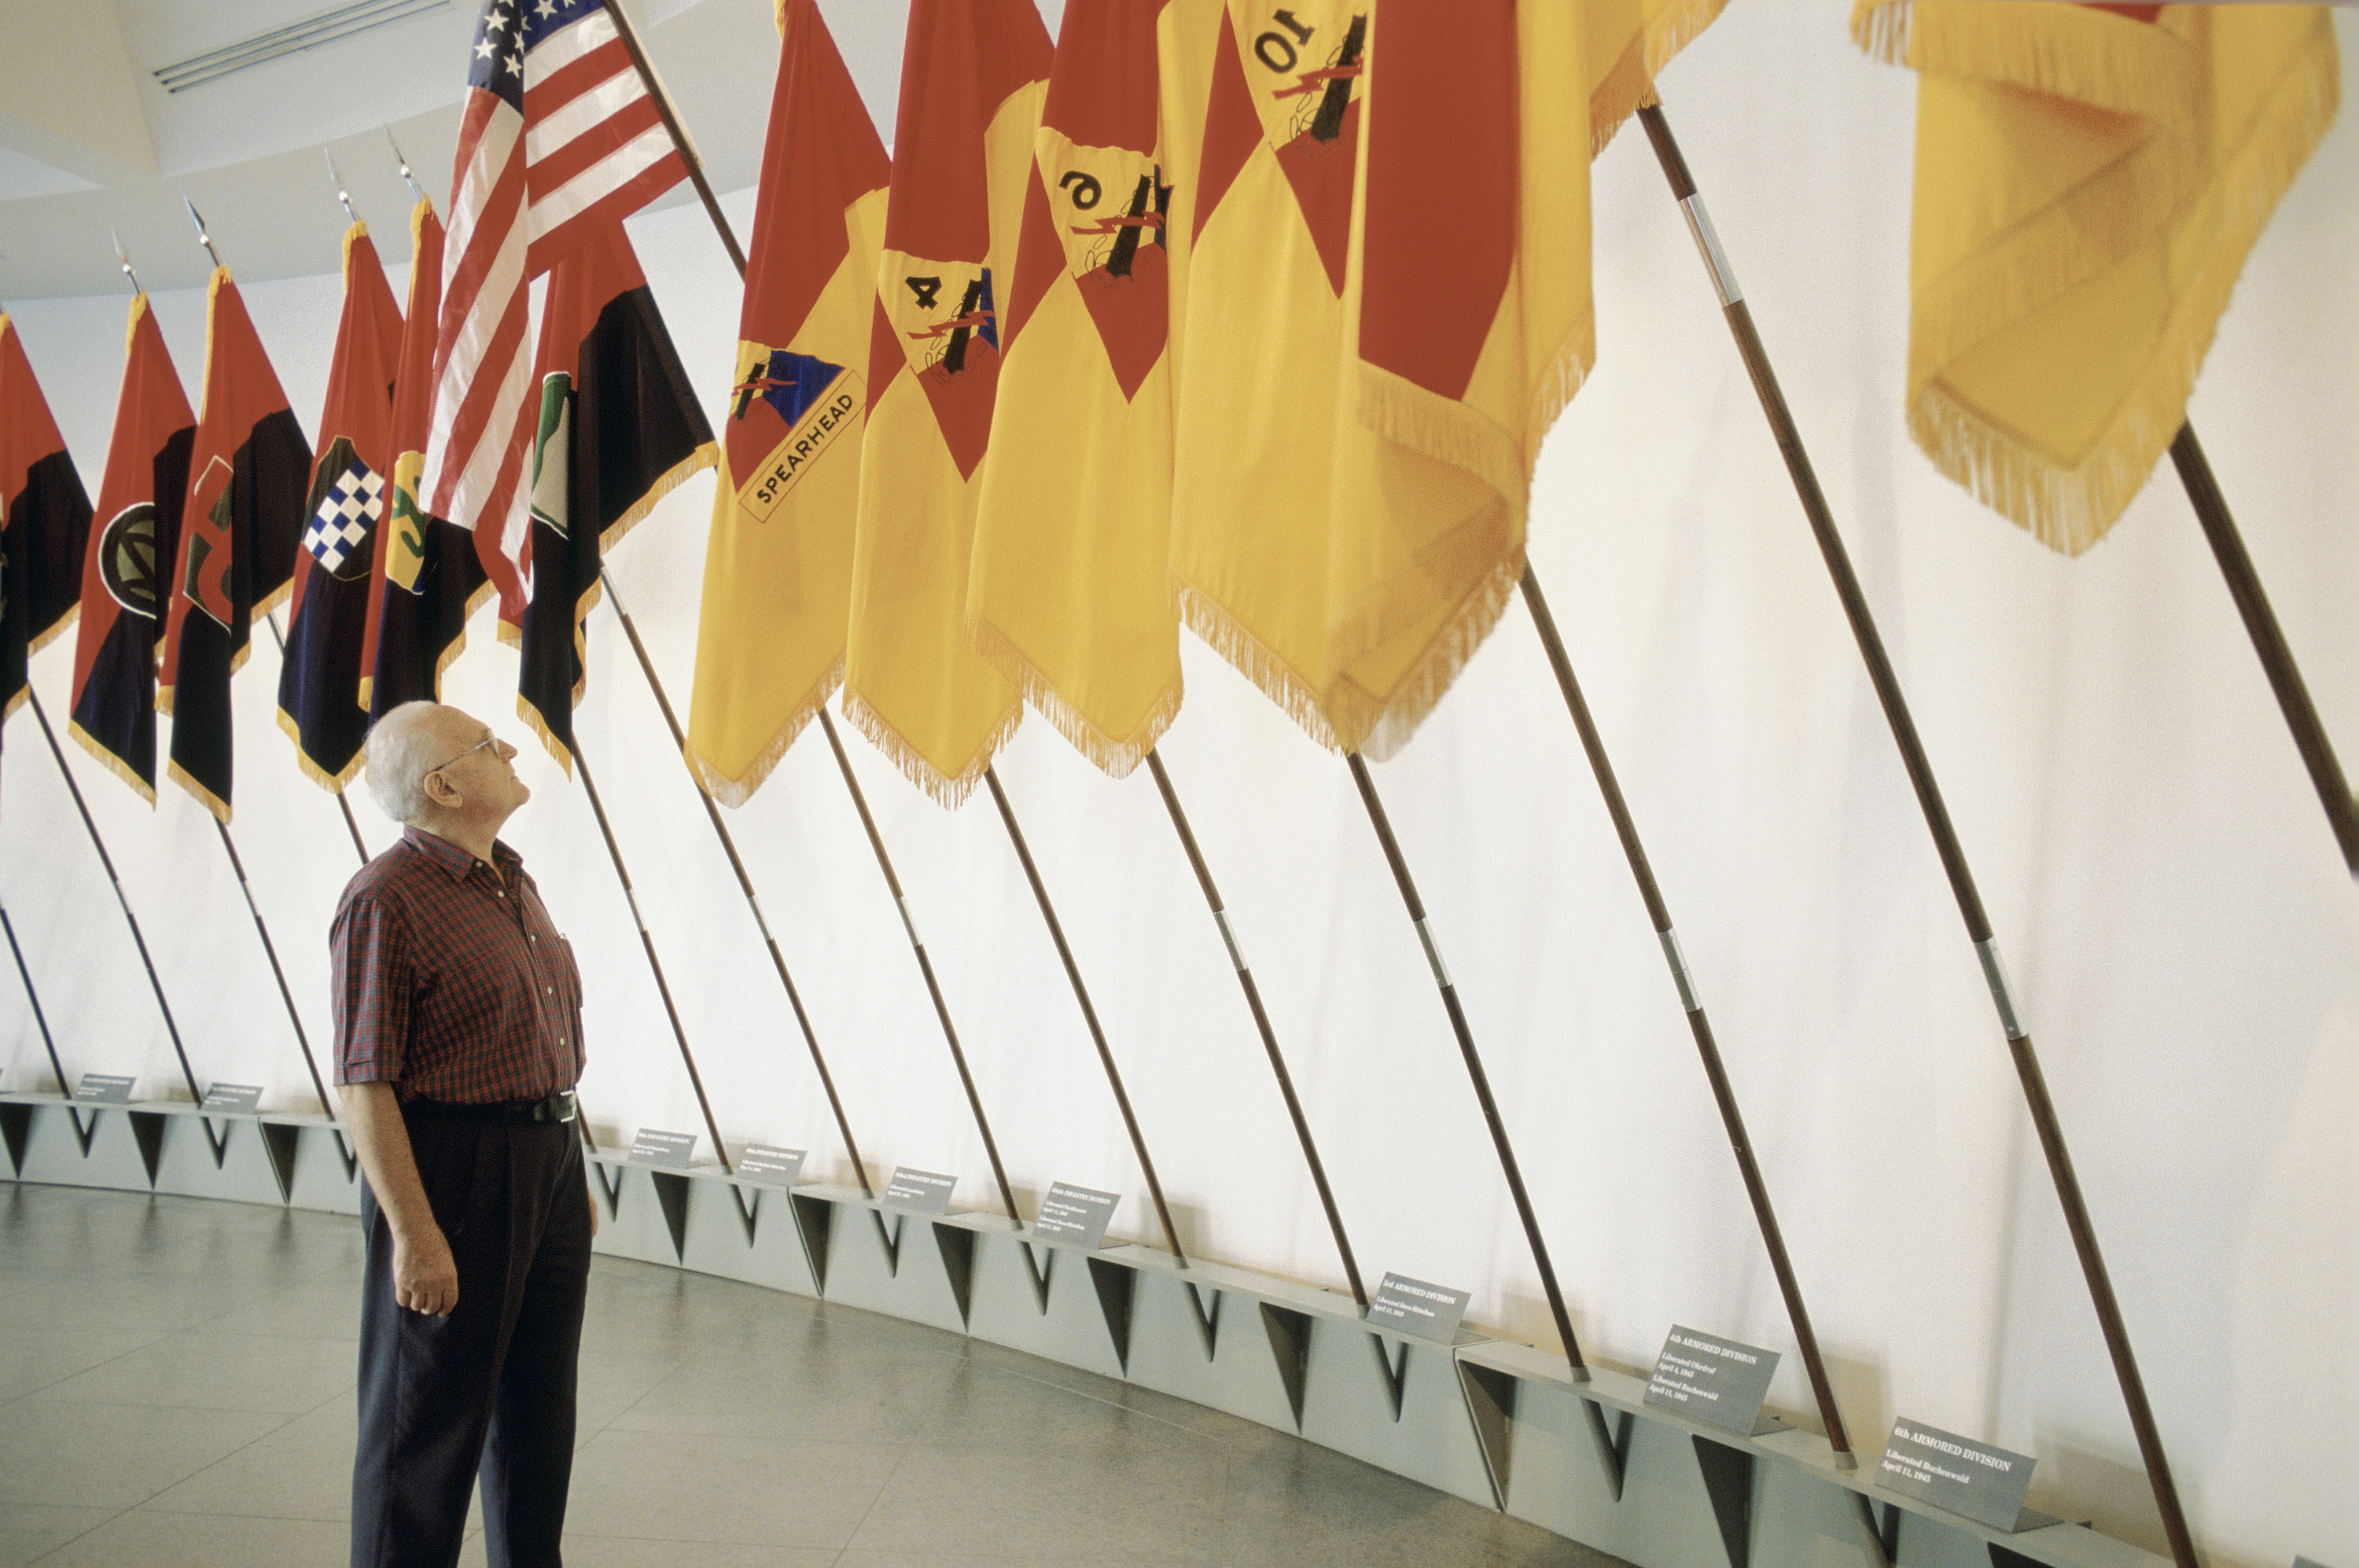 A visitor views the liberation flags installed in the lobby of the 14th Street entrance of the U.S. Holocaust Memorial Museum.